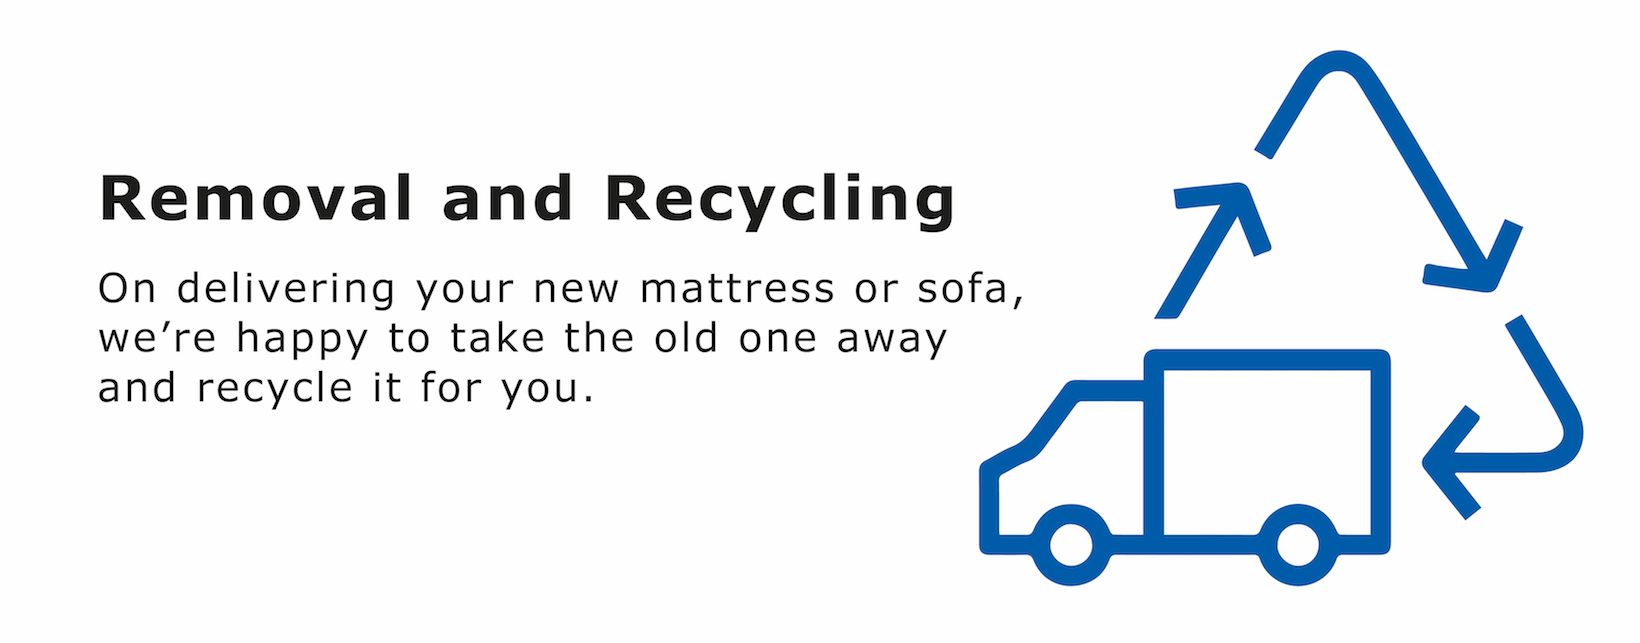 read more about our recycling service